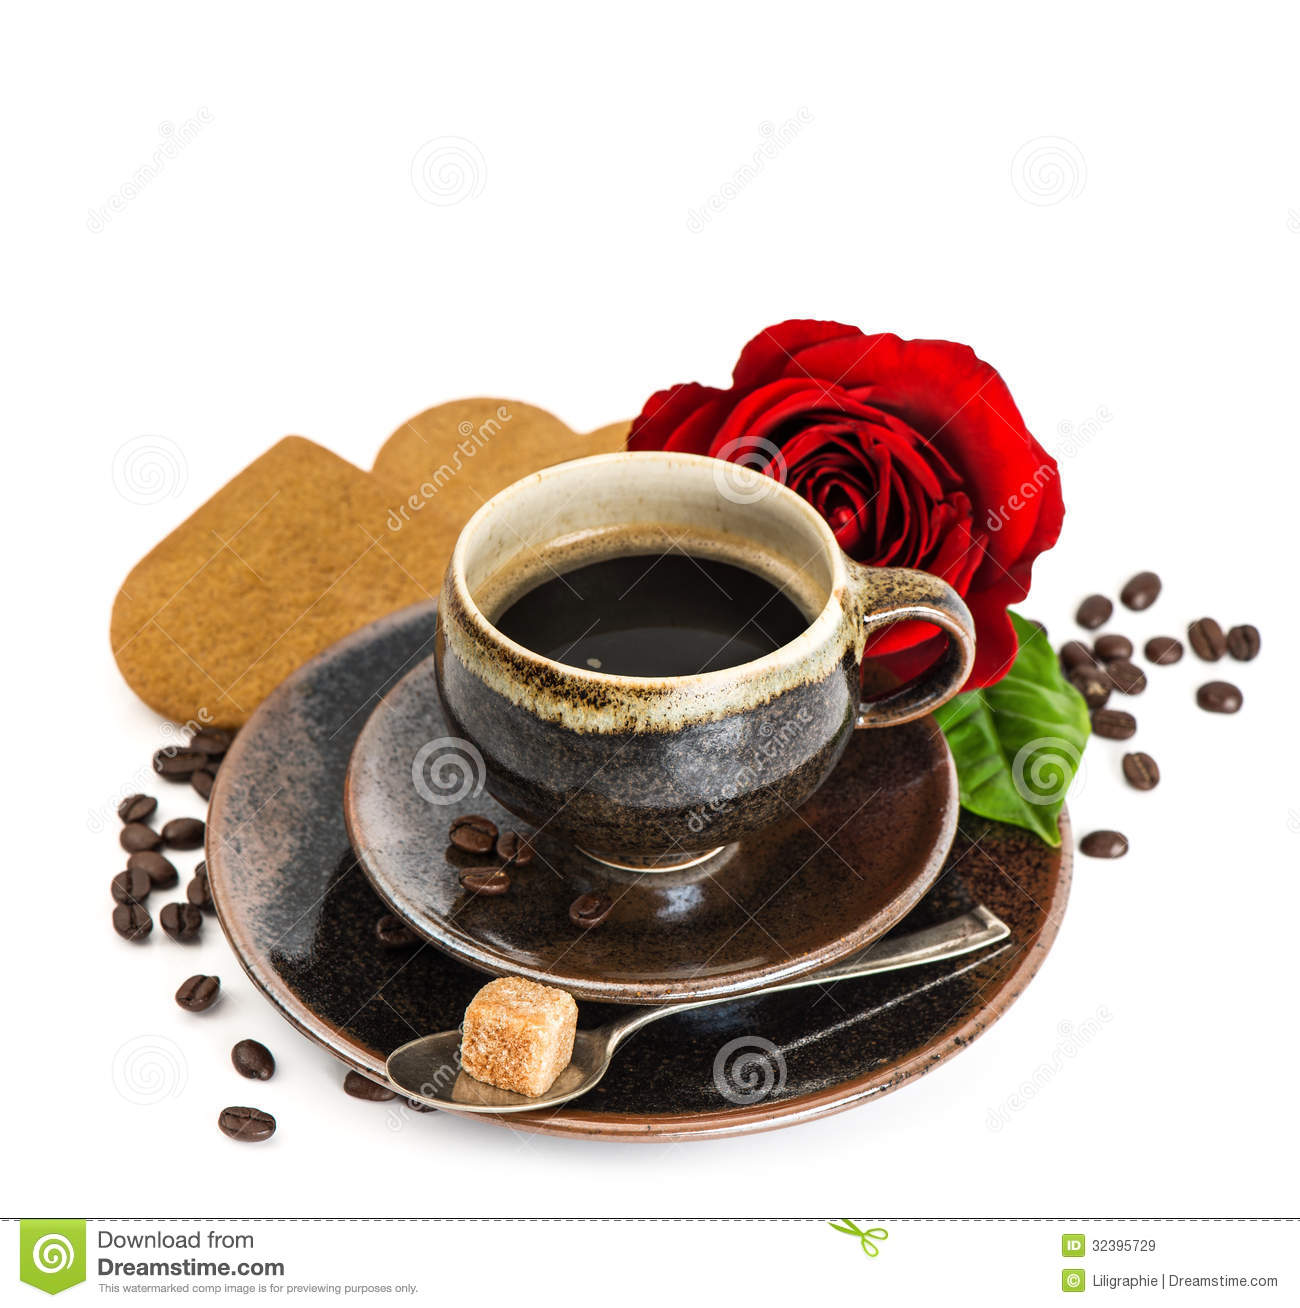 cup-black-coffee-red-rose-flower-cake-white-background-festive-arrangement-selective-focus-32395729